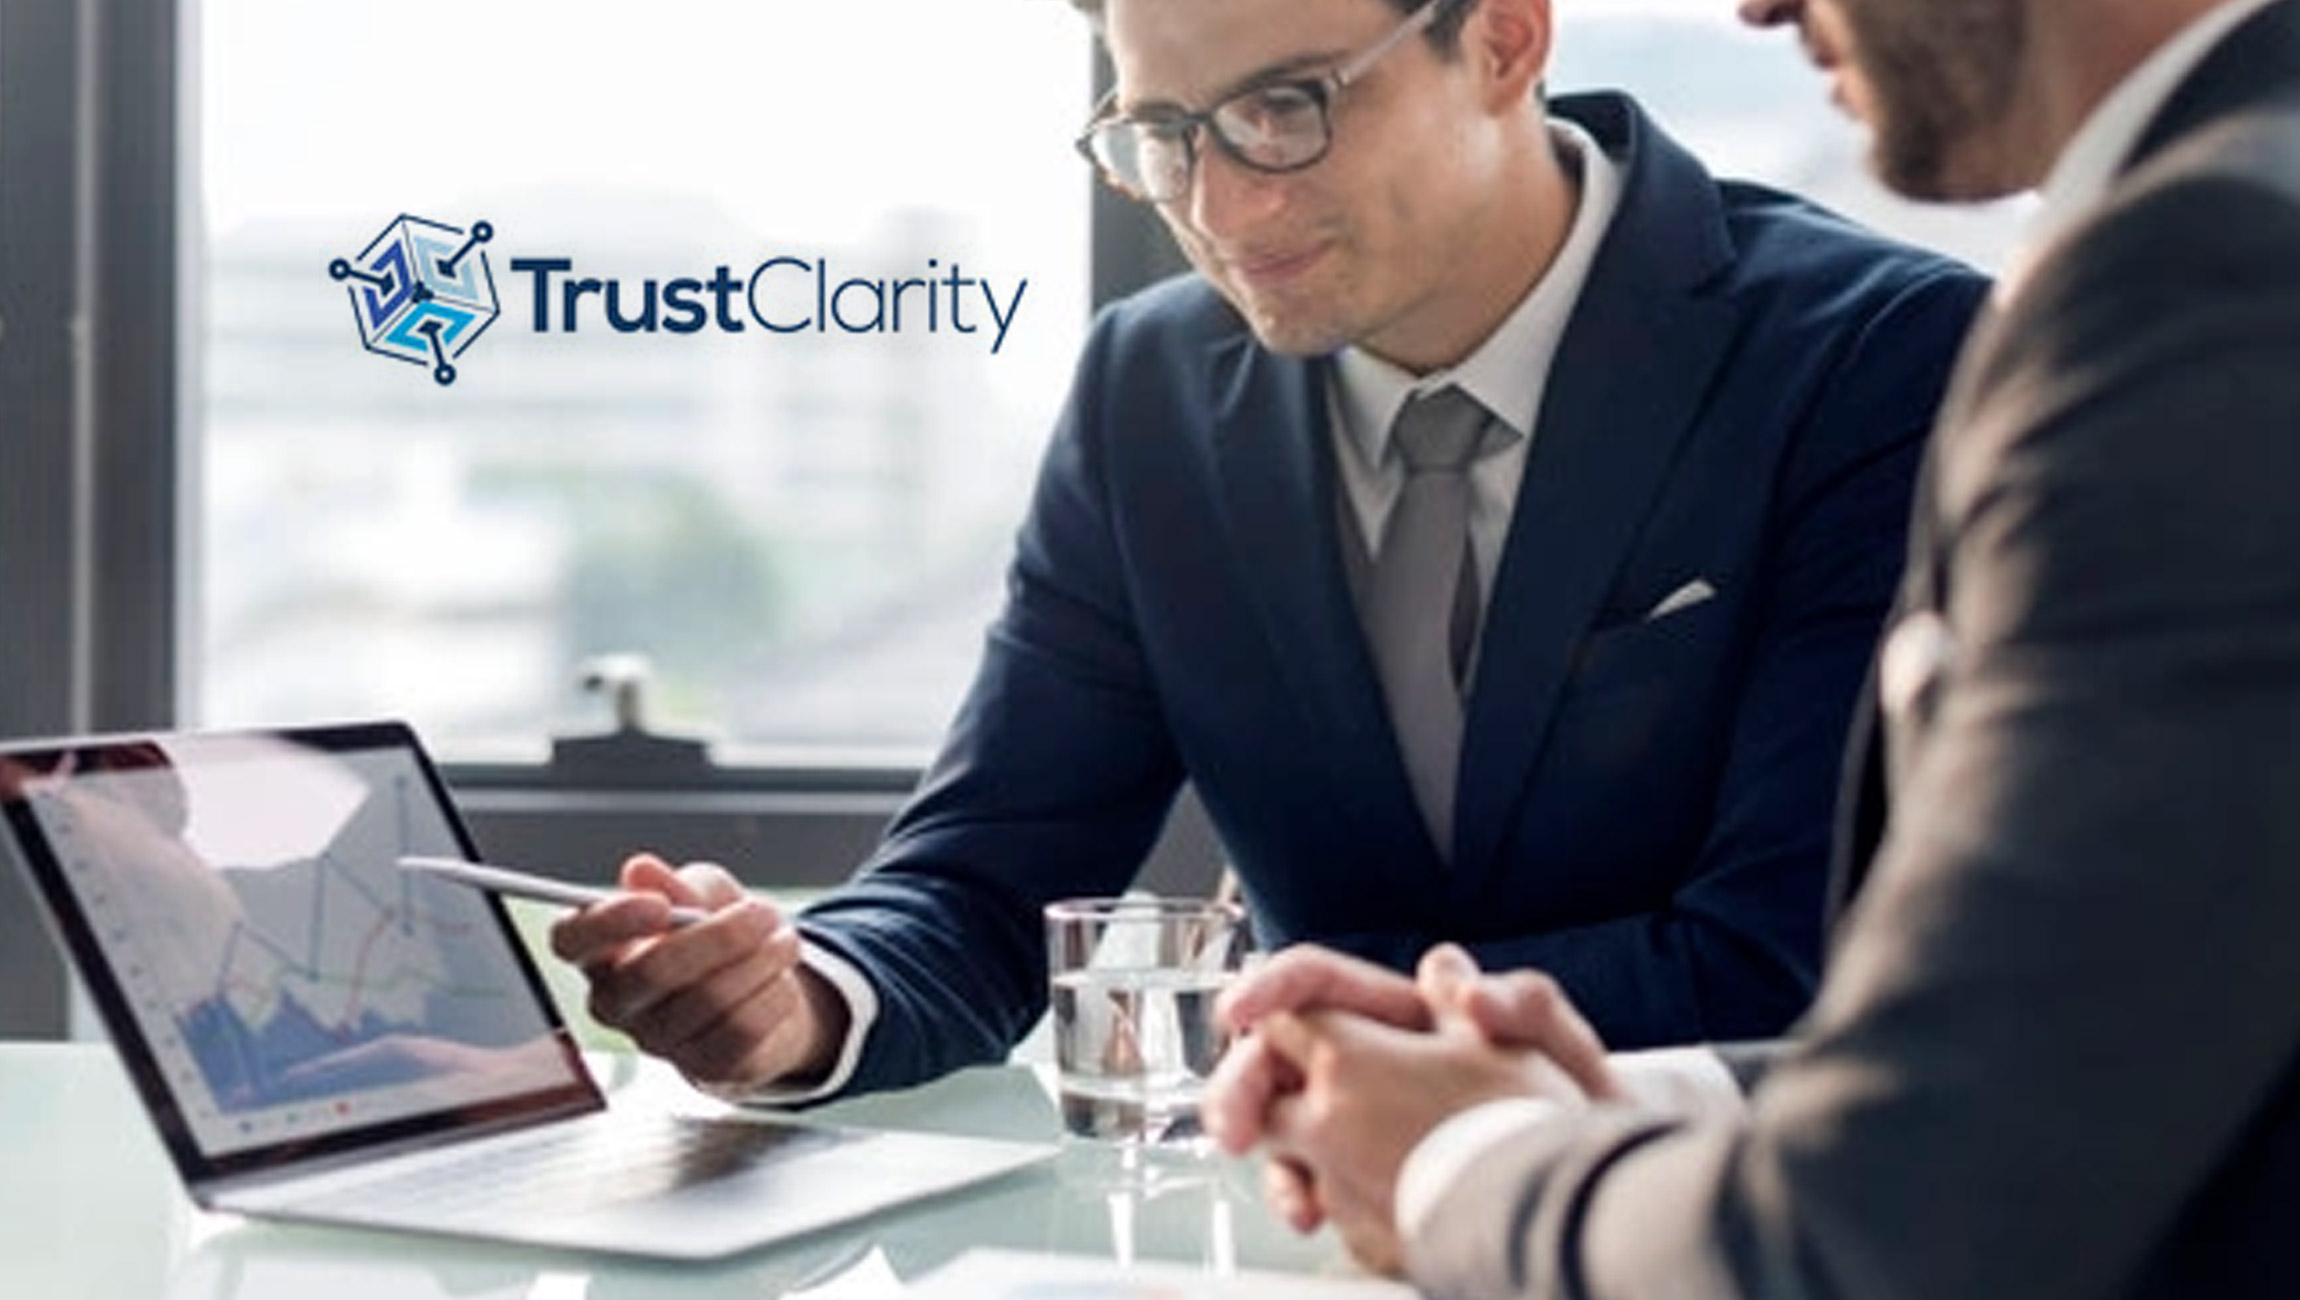 TrustClarity Launches Affiliate and Reseller Programs To Drive Circular Economy